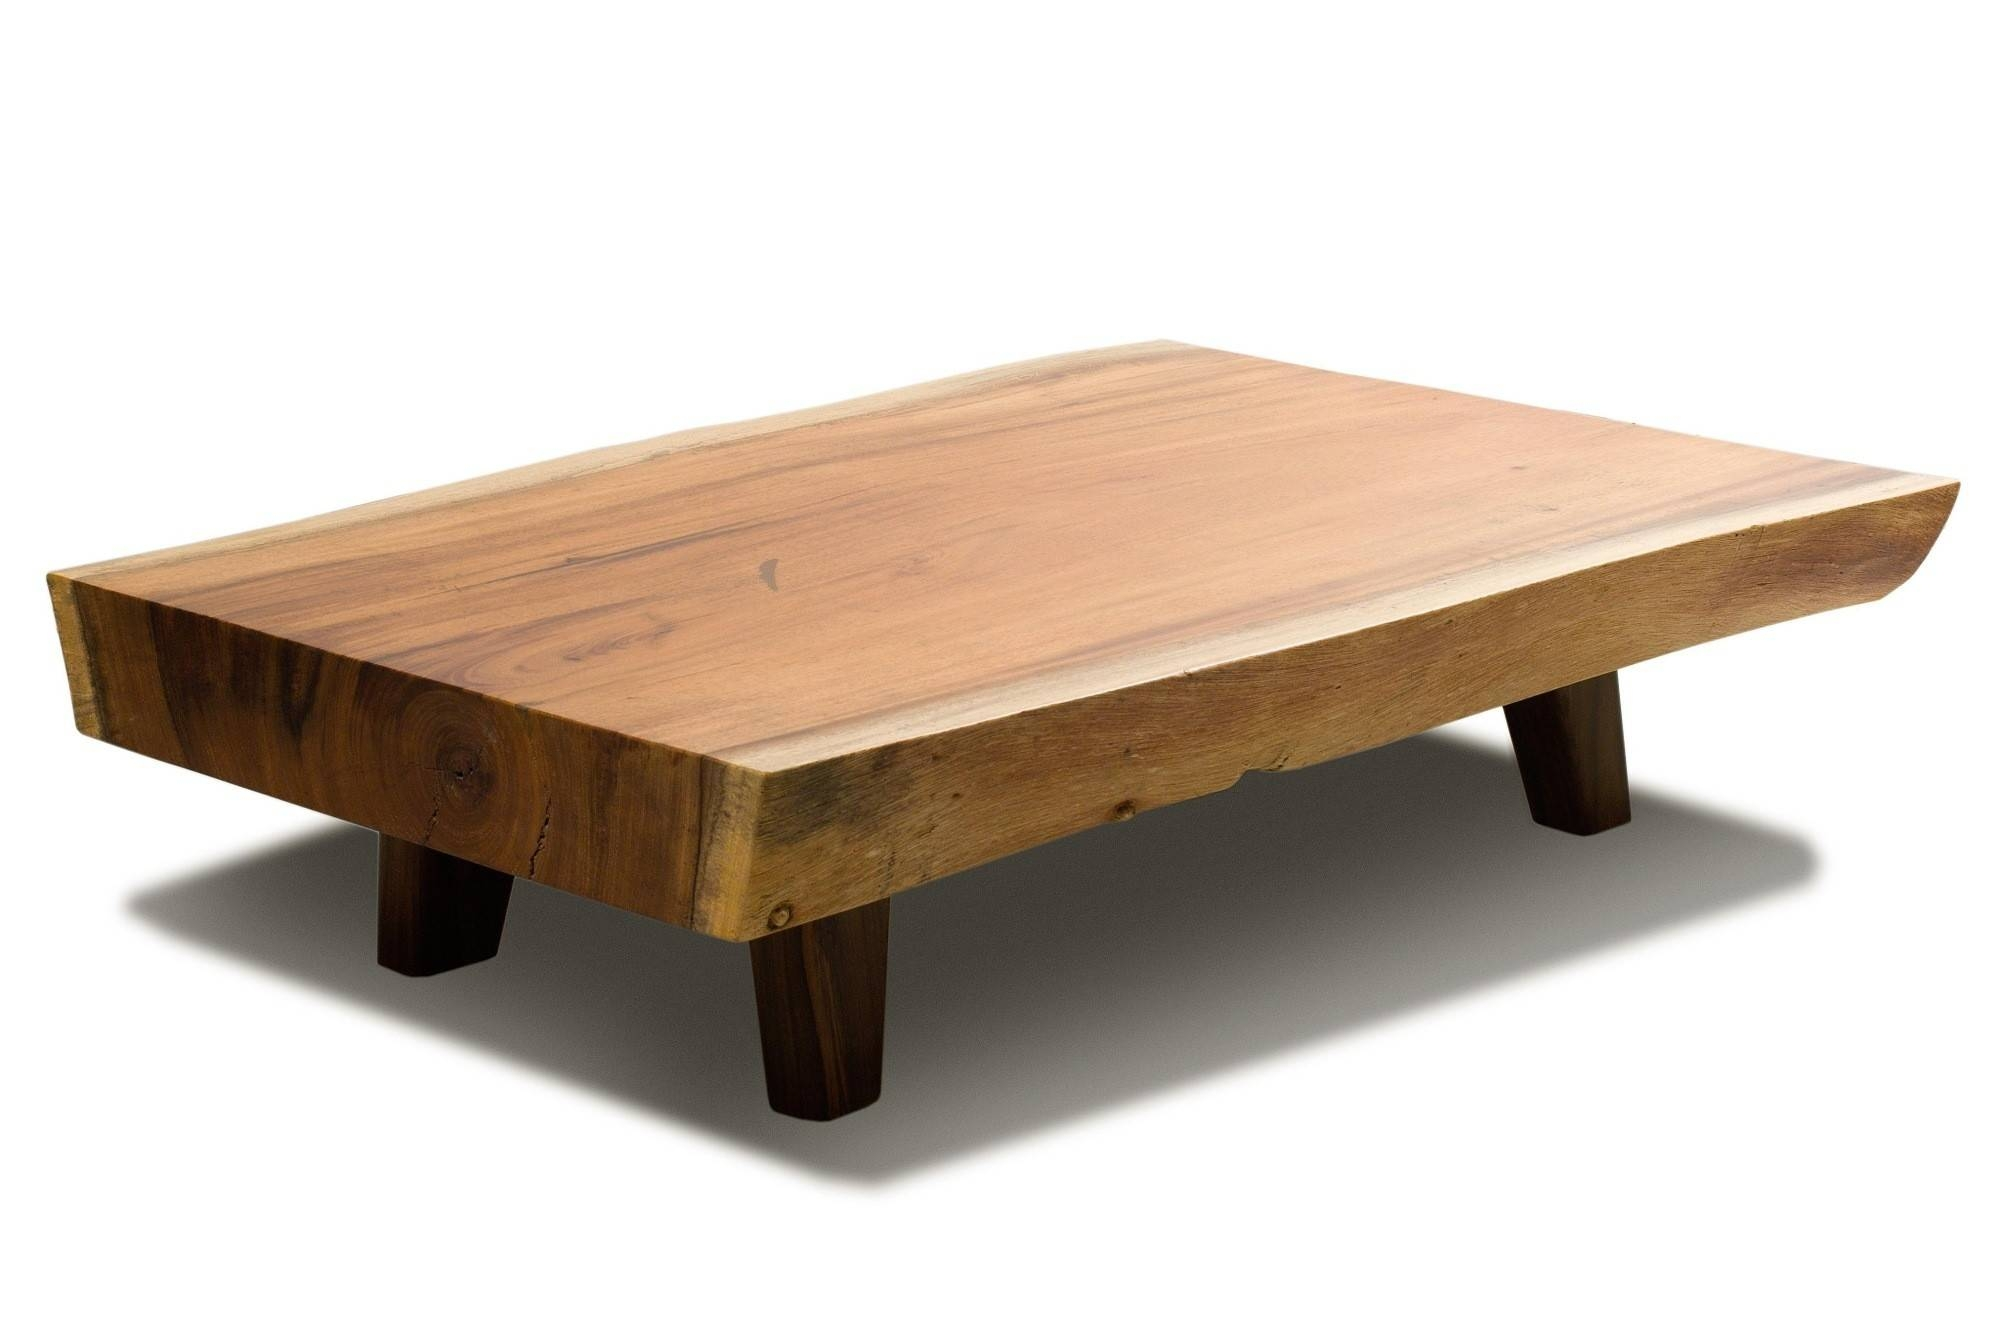 30 Inspirations of Short Legs Coffee Tables